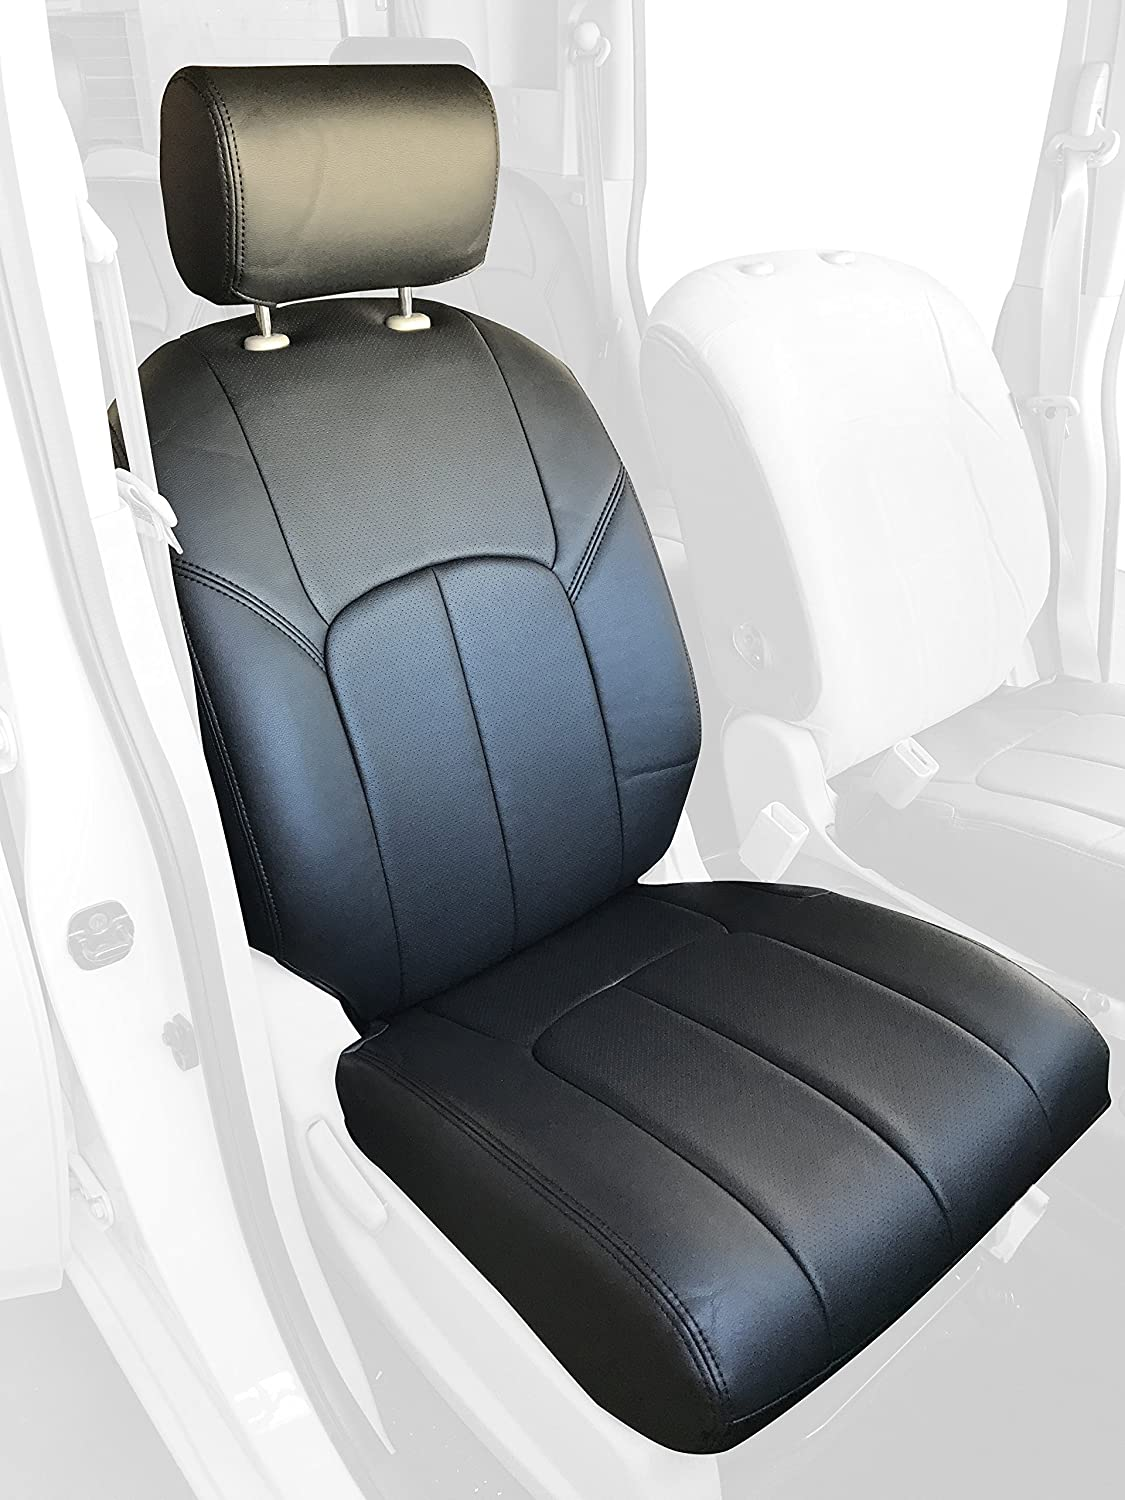 Clazzio AP212022gry Vinyl Seat Cover (Toyota Tacoma, Front and Rear, Grey)